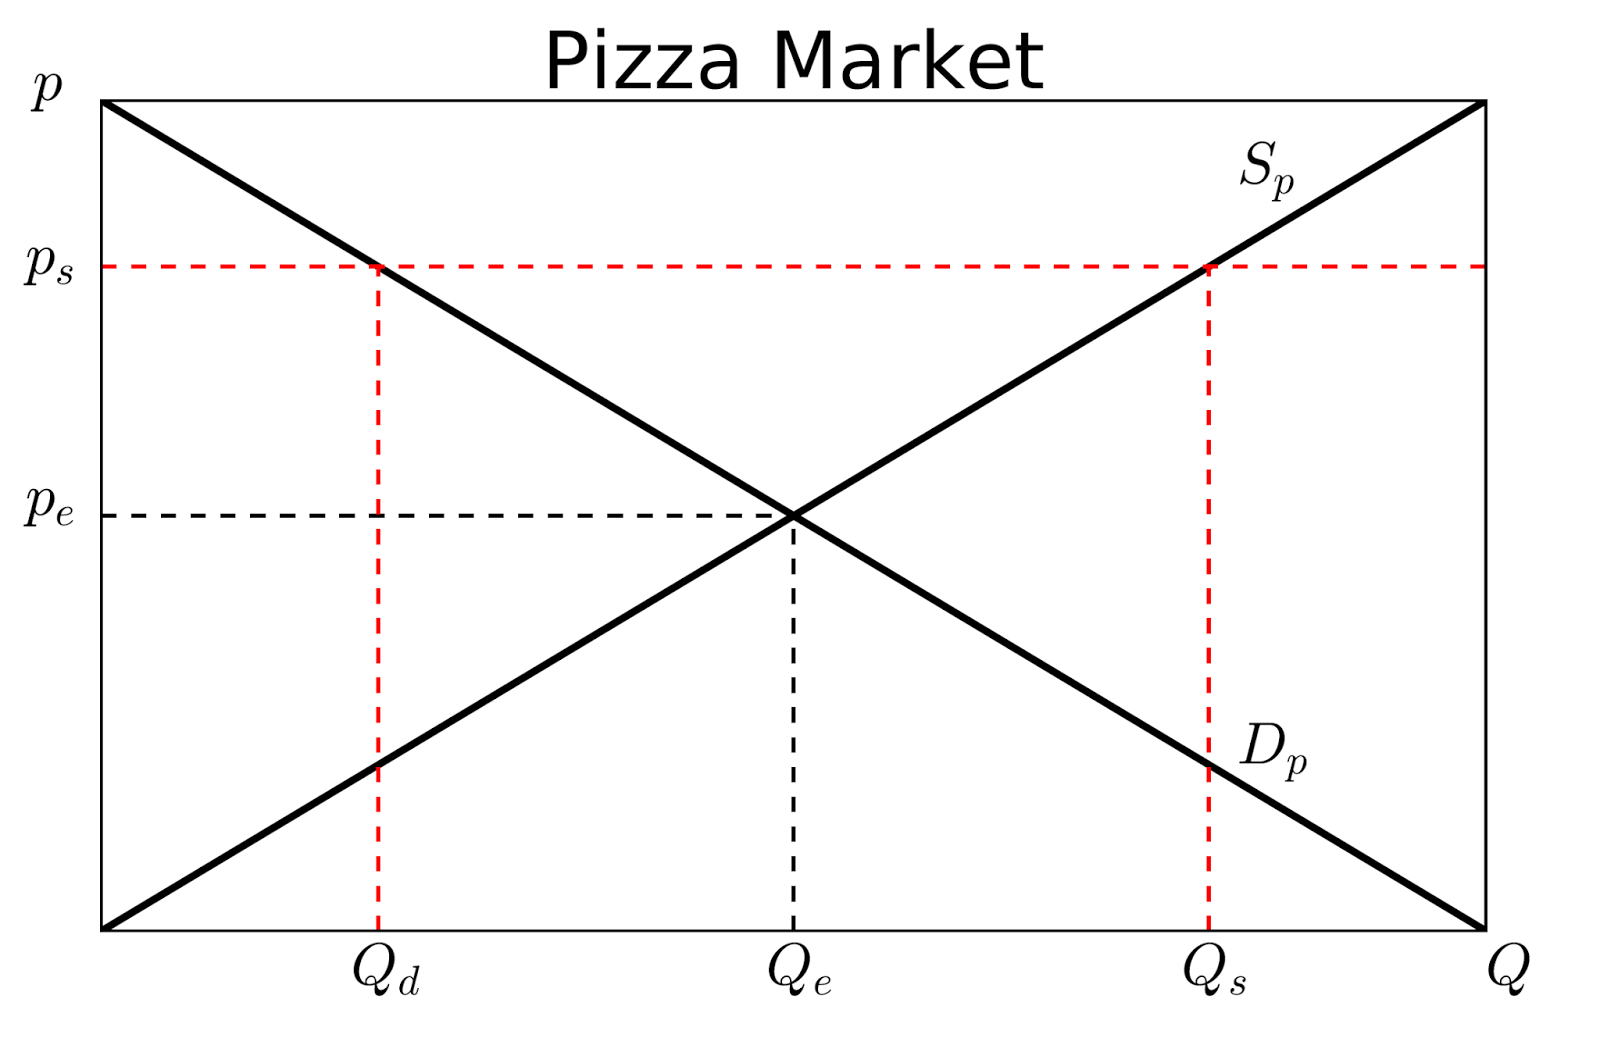 Supply And Demand Diagram Money Markets And Misperceptions Building Supply And Demand